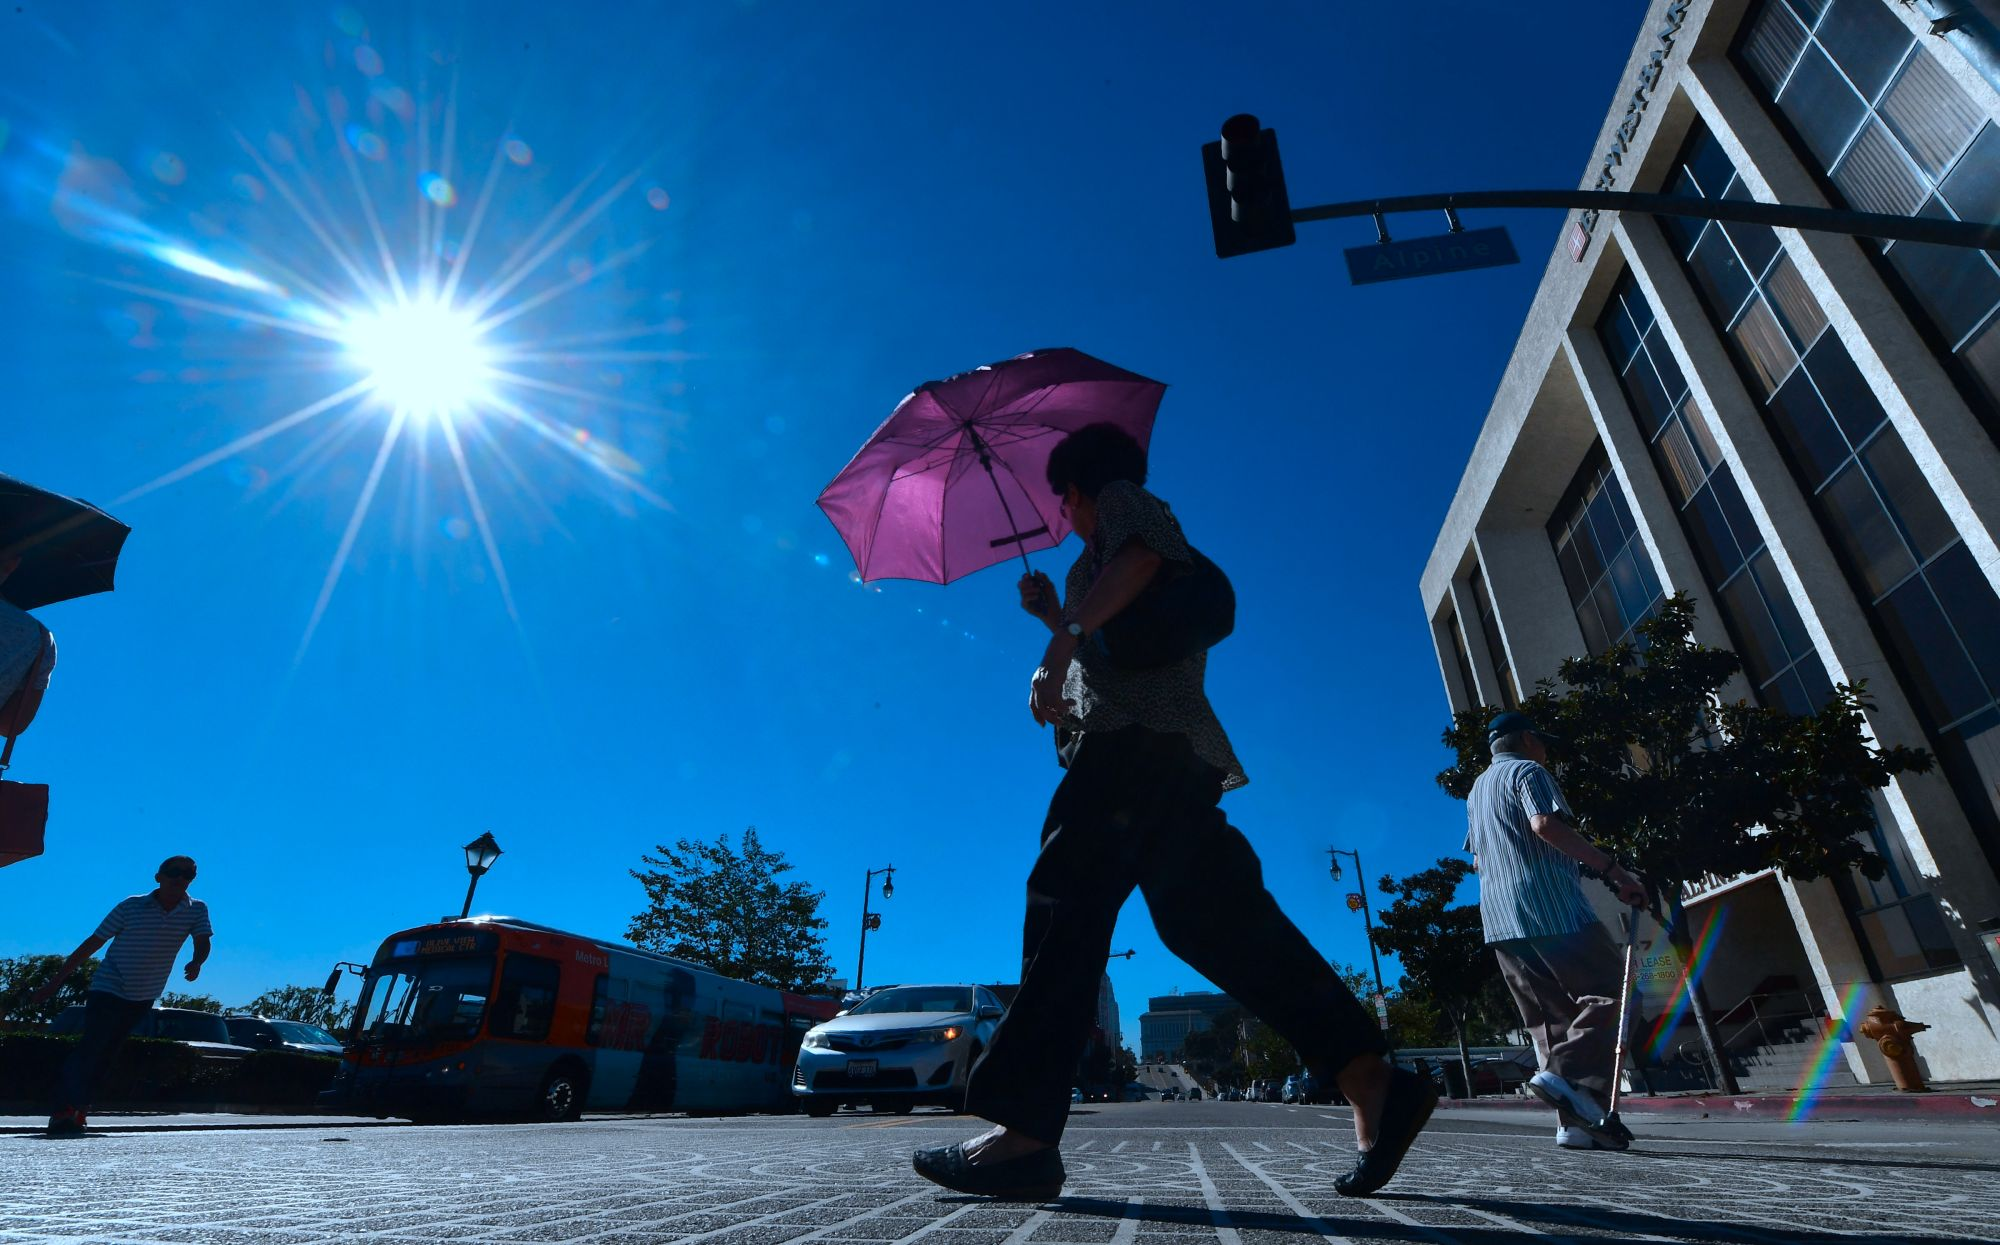 A pedestrian uses an umbrella on a hot sunny morning in Los Angeles in this file photo. (FREDERIC J. BROWN/AFP via Getty Images)